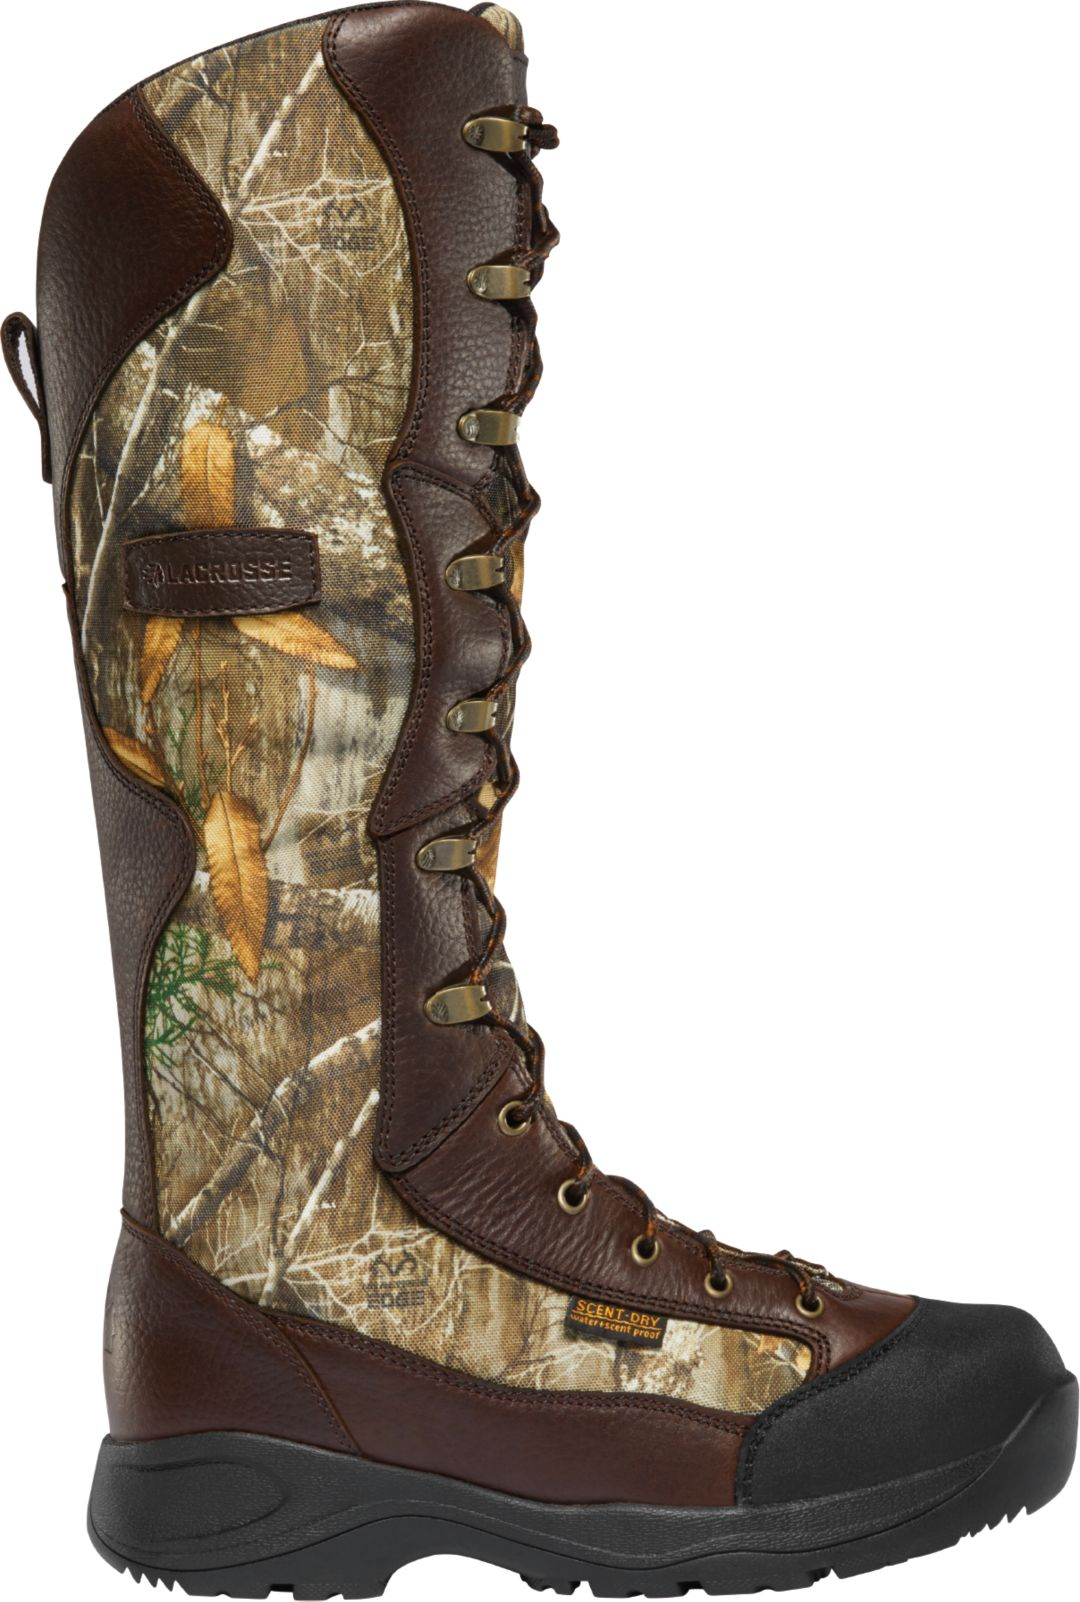 20403edab91 LaCrosse Men's Venom 18'' Realtree Edge Snakeproof Hunting Boots